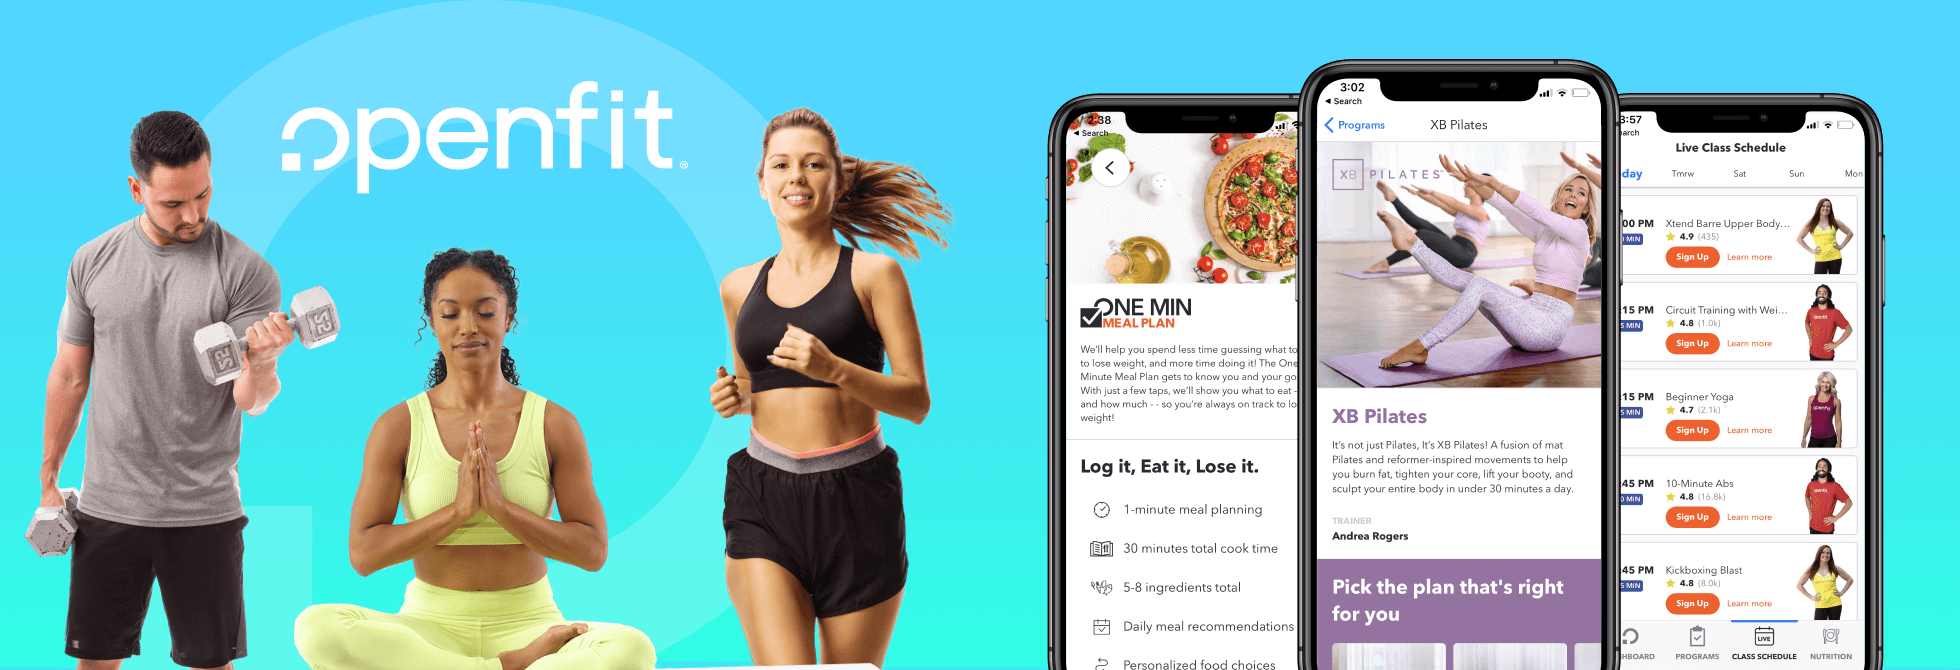 Openfit workout and nutrition app